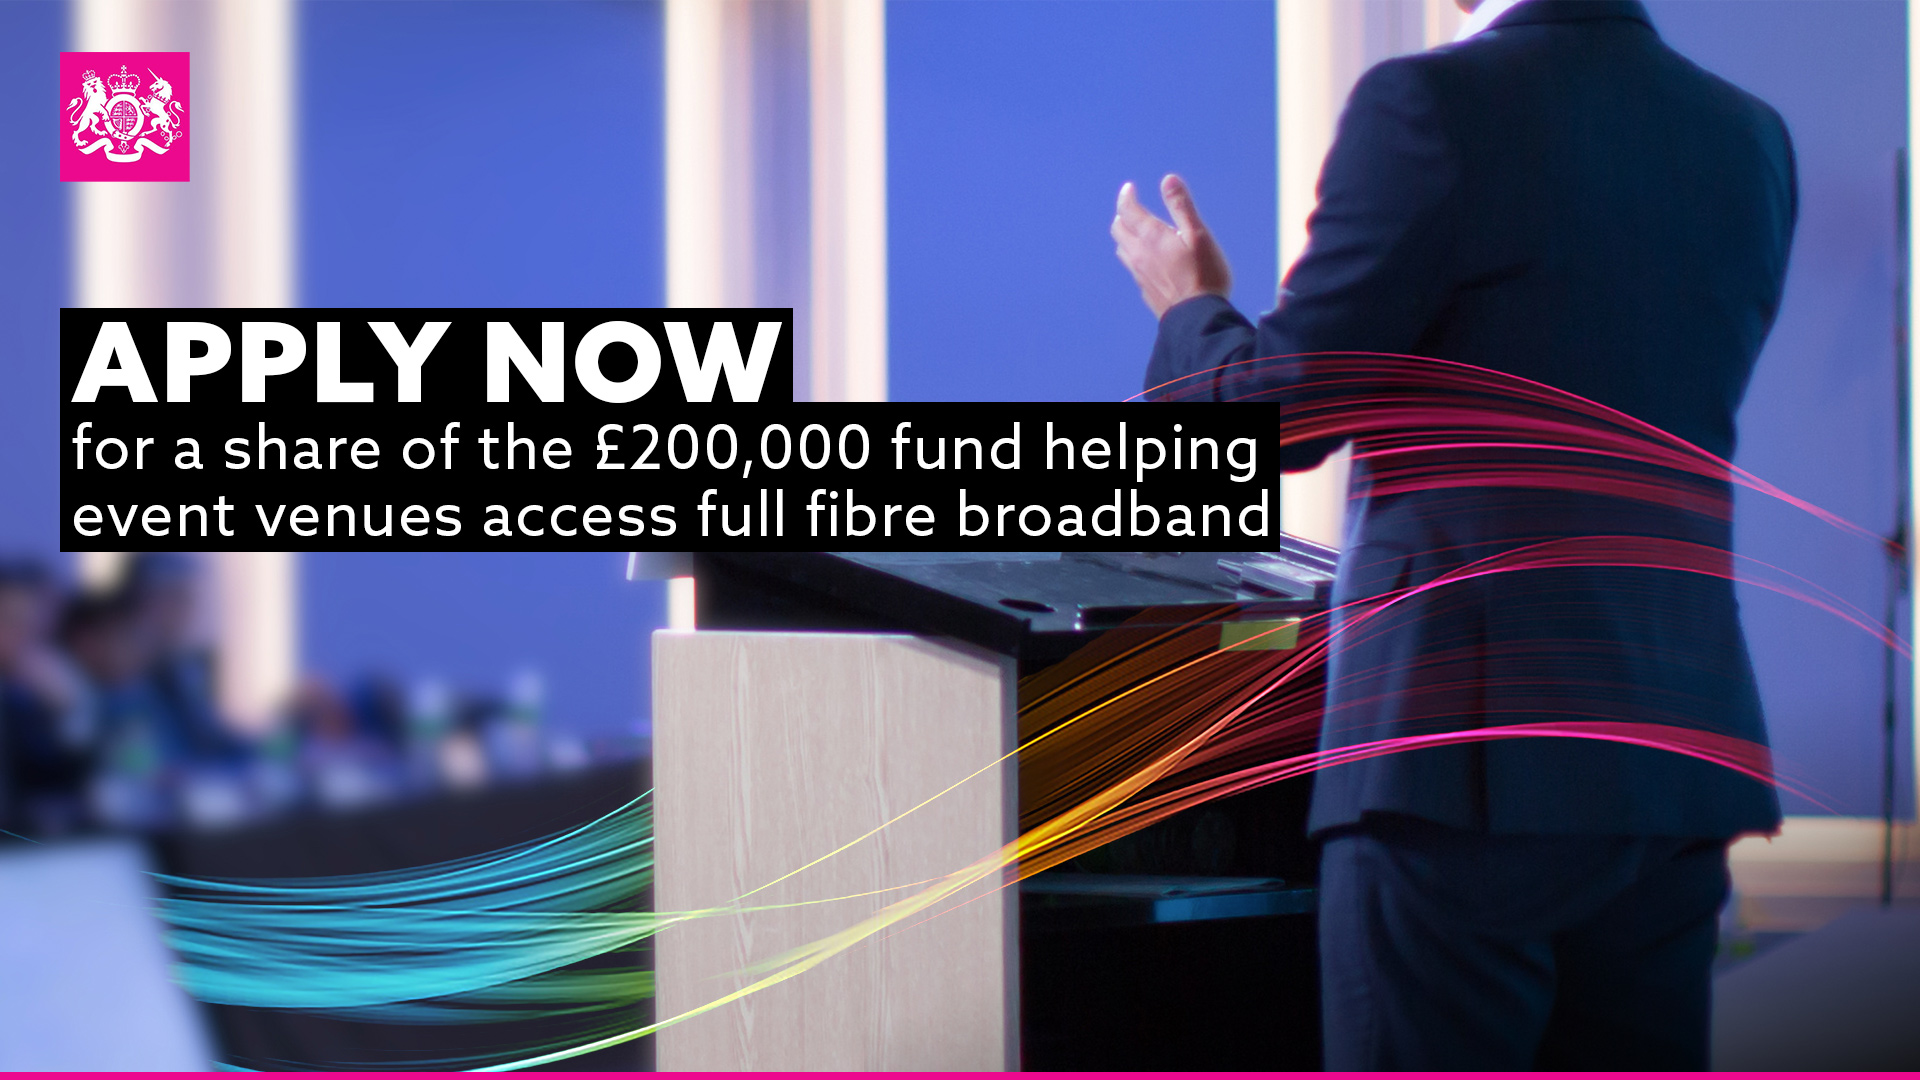 Today DCMS is launching round 2 of the broadband c header internal